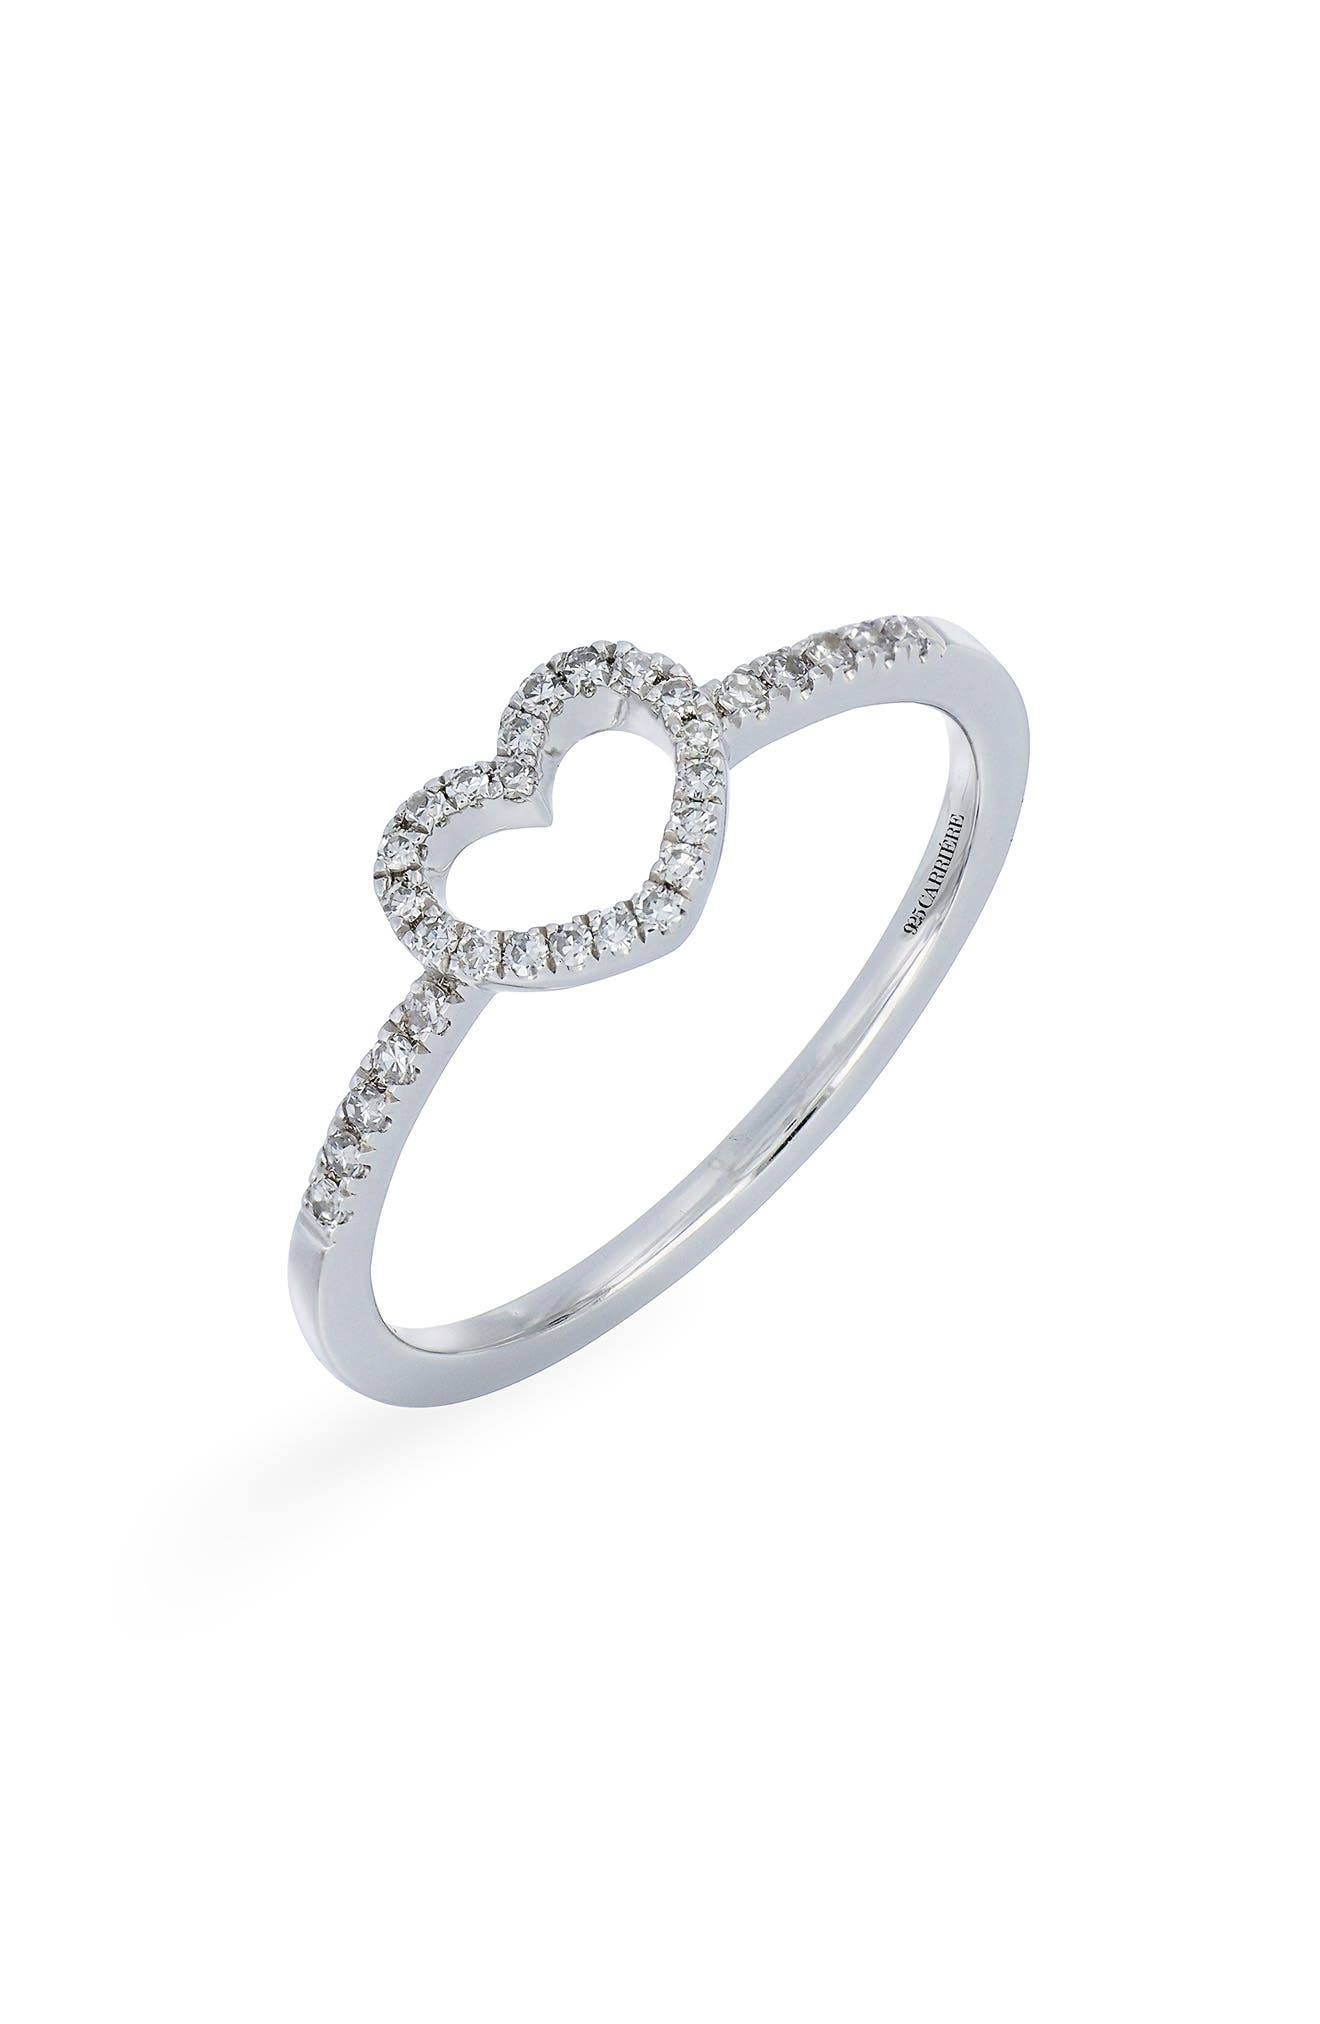 Carrière Open Heart Diamond Ring,                         Main,                         color, Sterling Silver/ Diamond